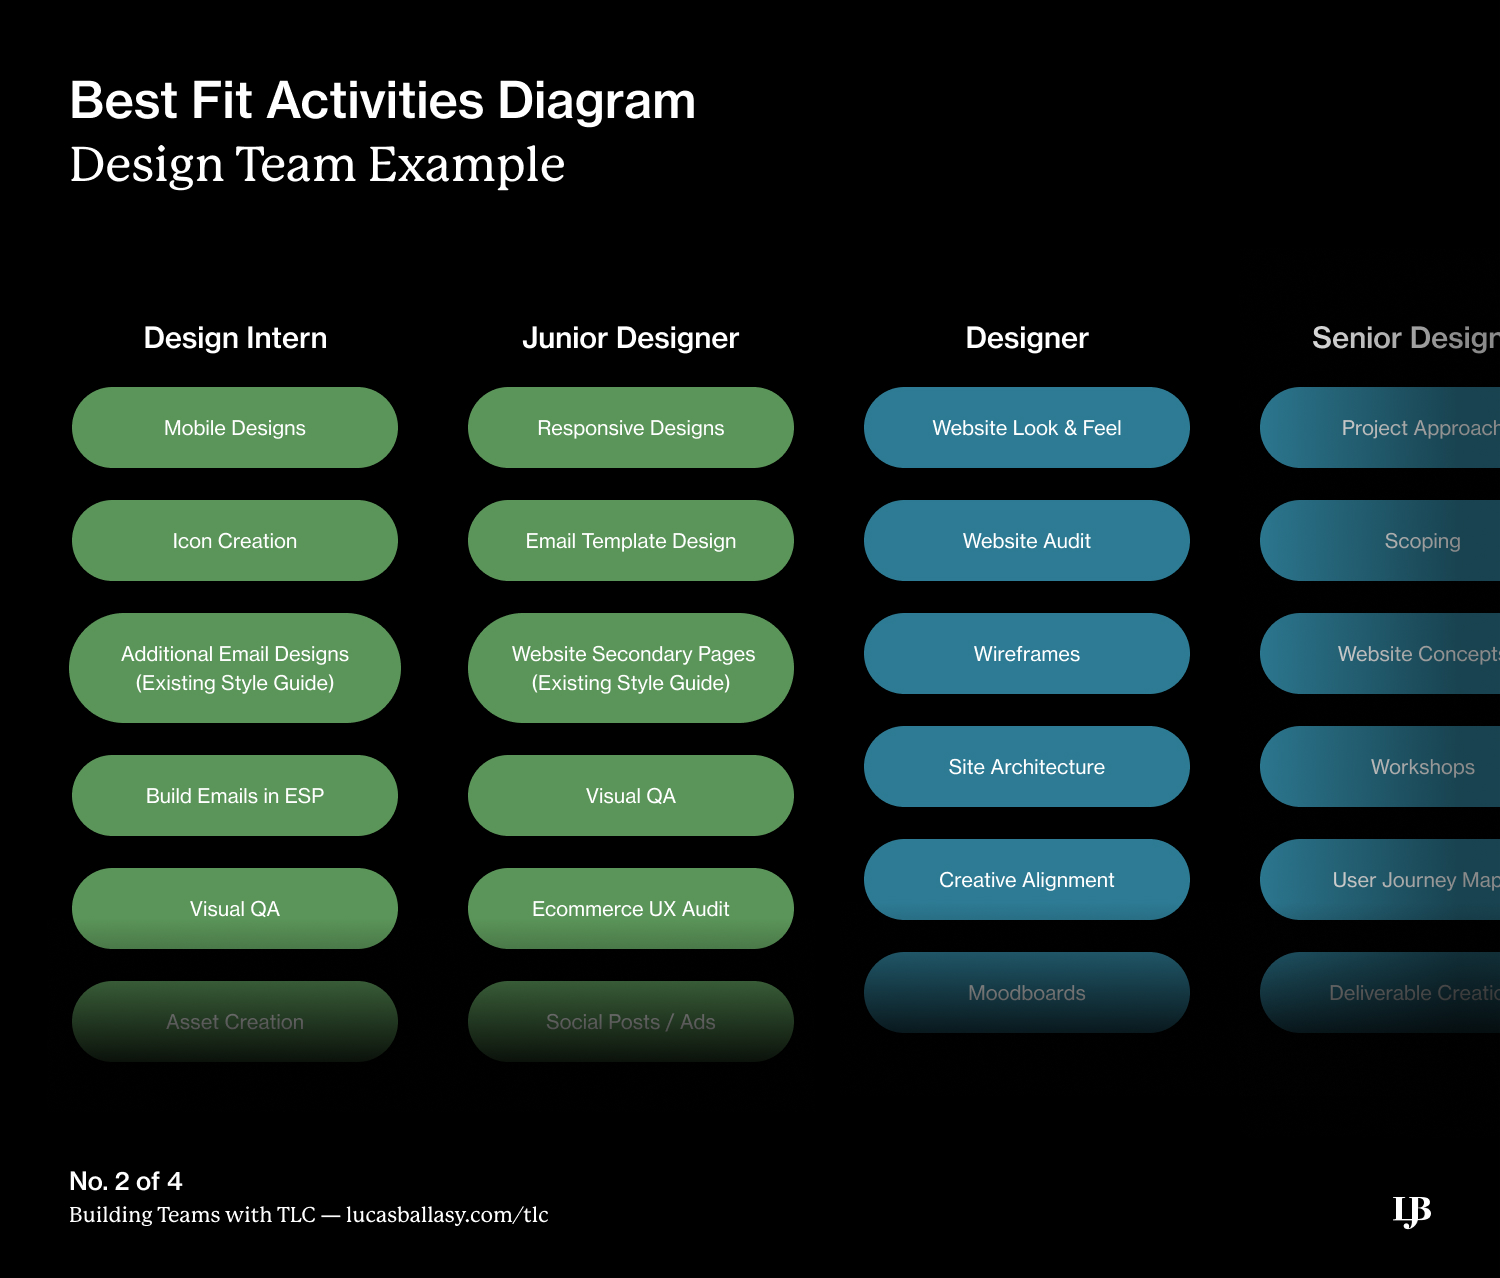 Best Fit Activities Diagram from Building Teams with TLC: A Framework by Lucas Ballasy